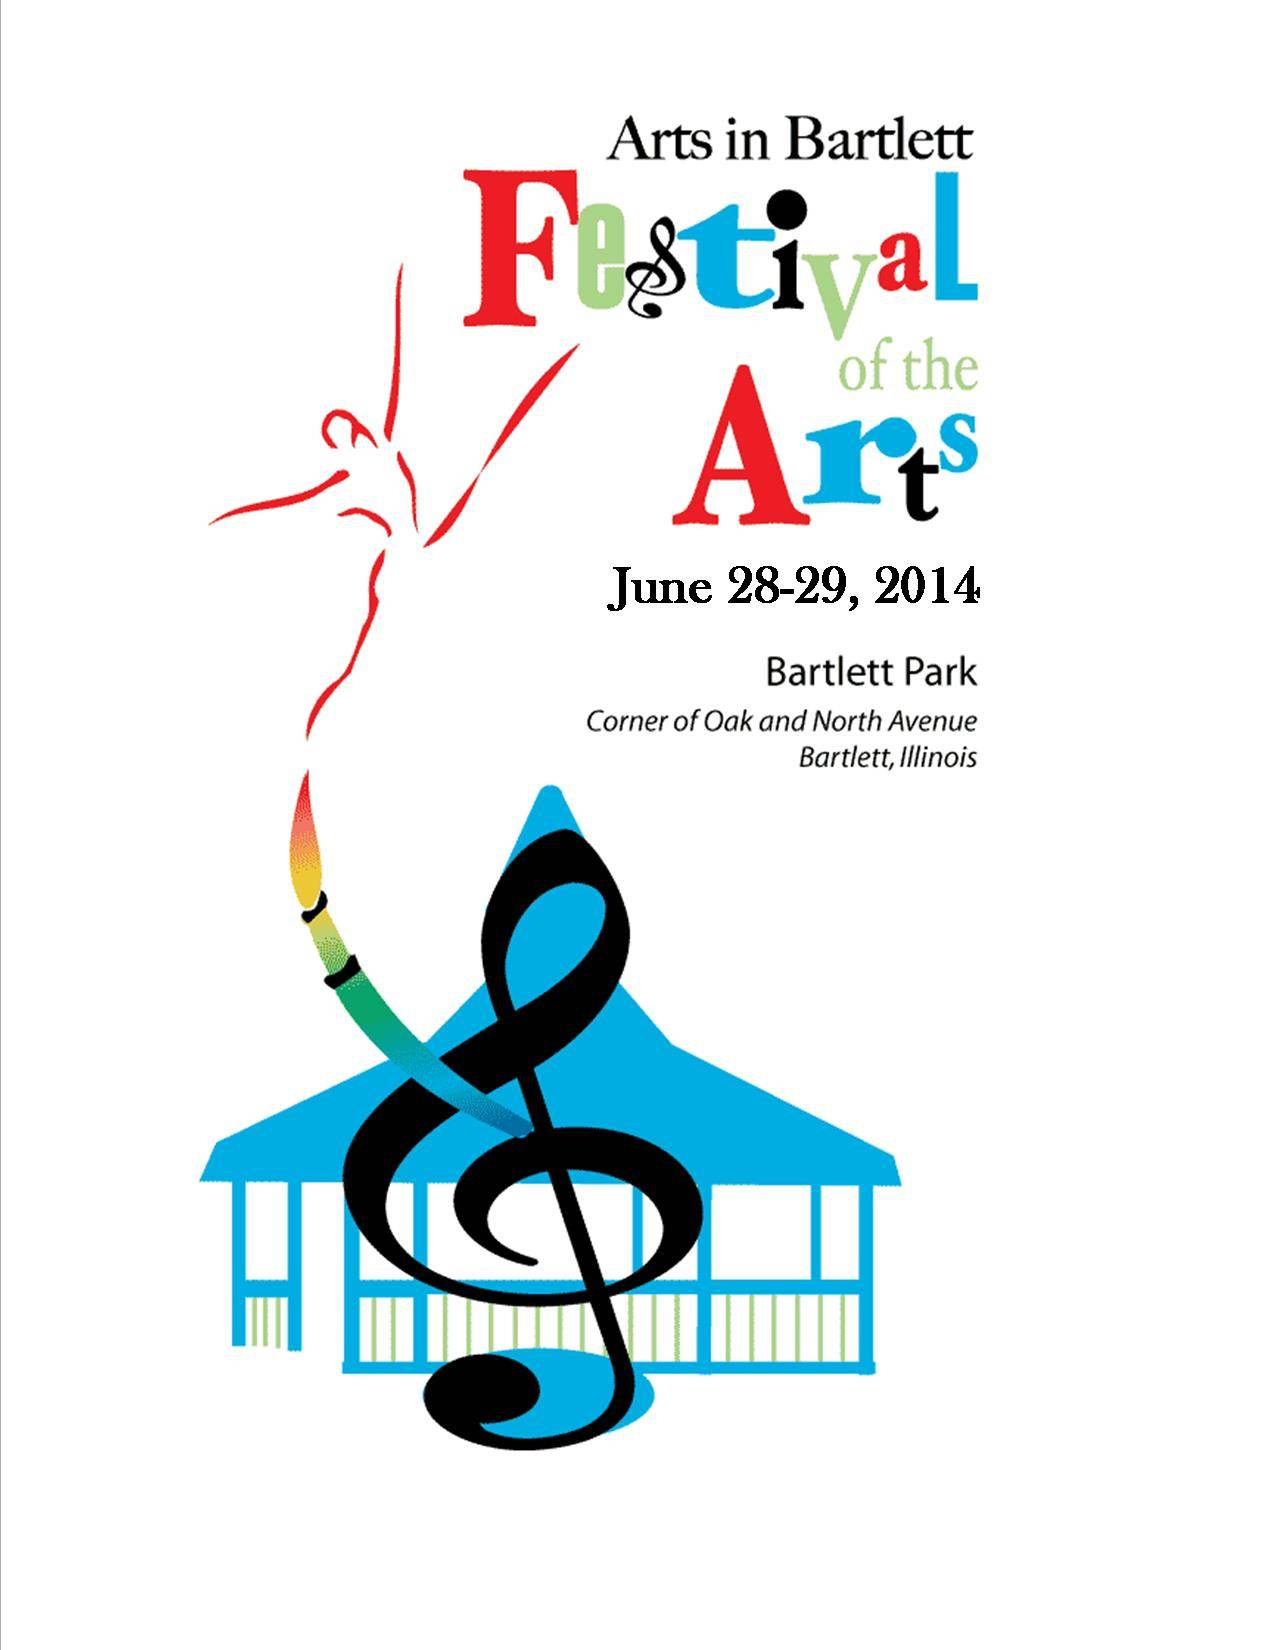 Bartlett Festival of the Arts